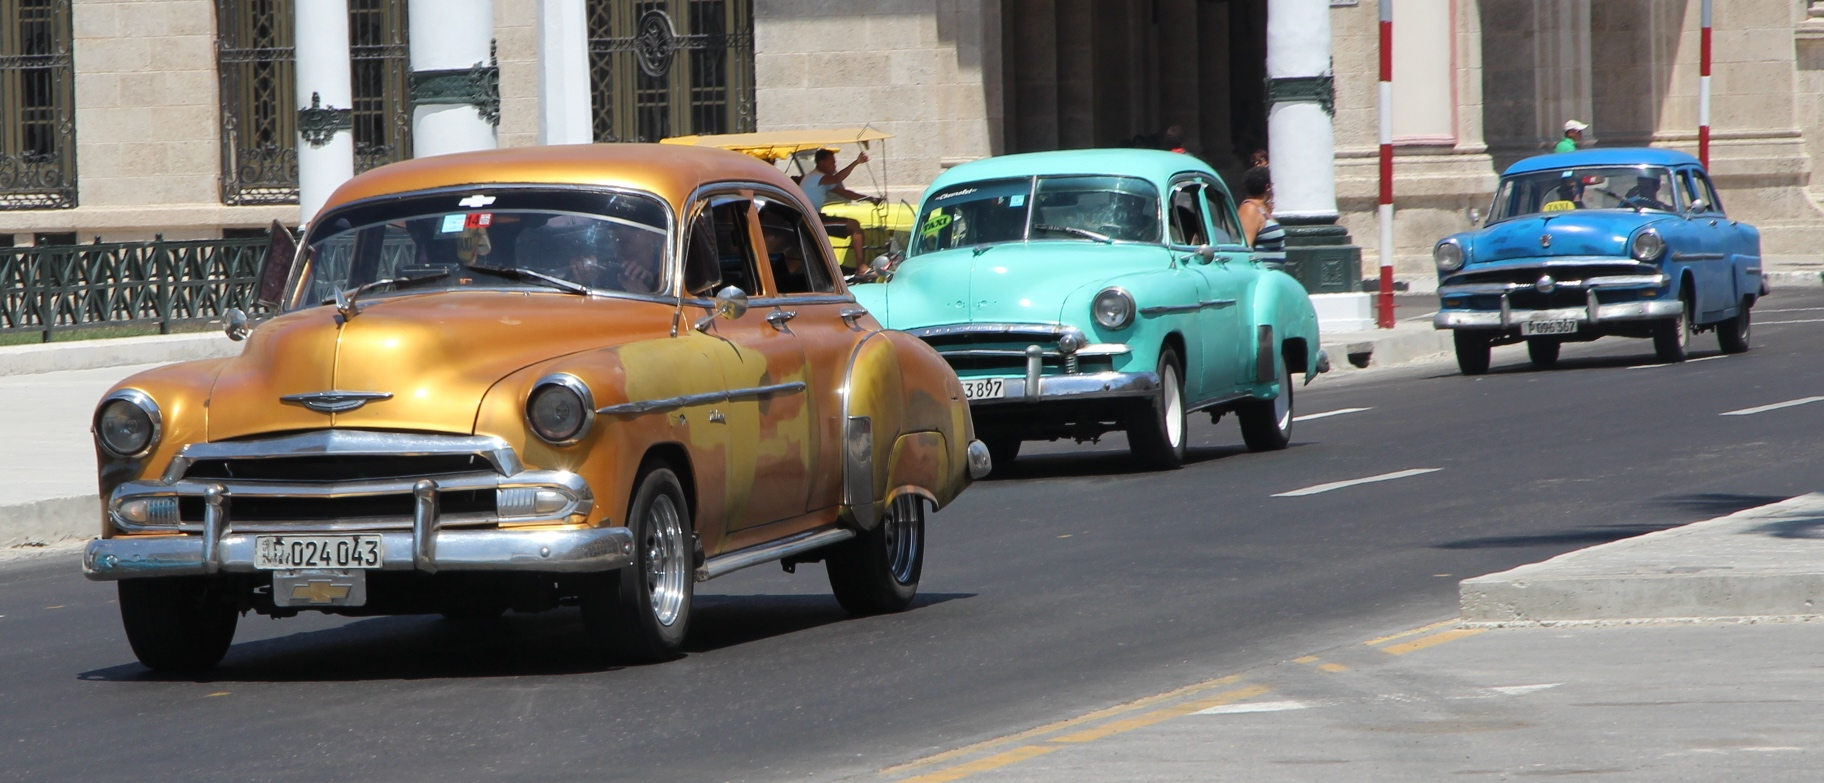 Three vintage cars in Cuba   Where to next?